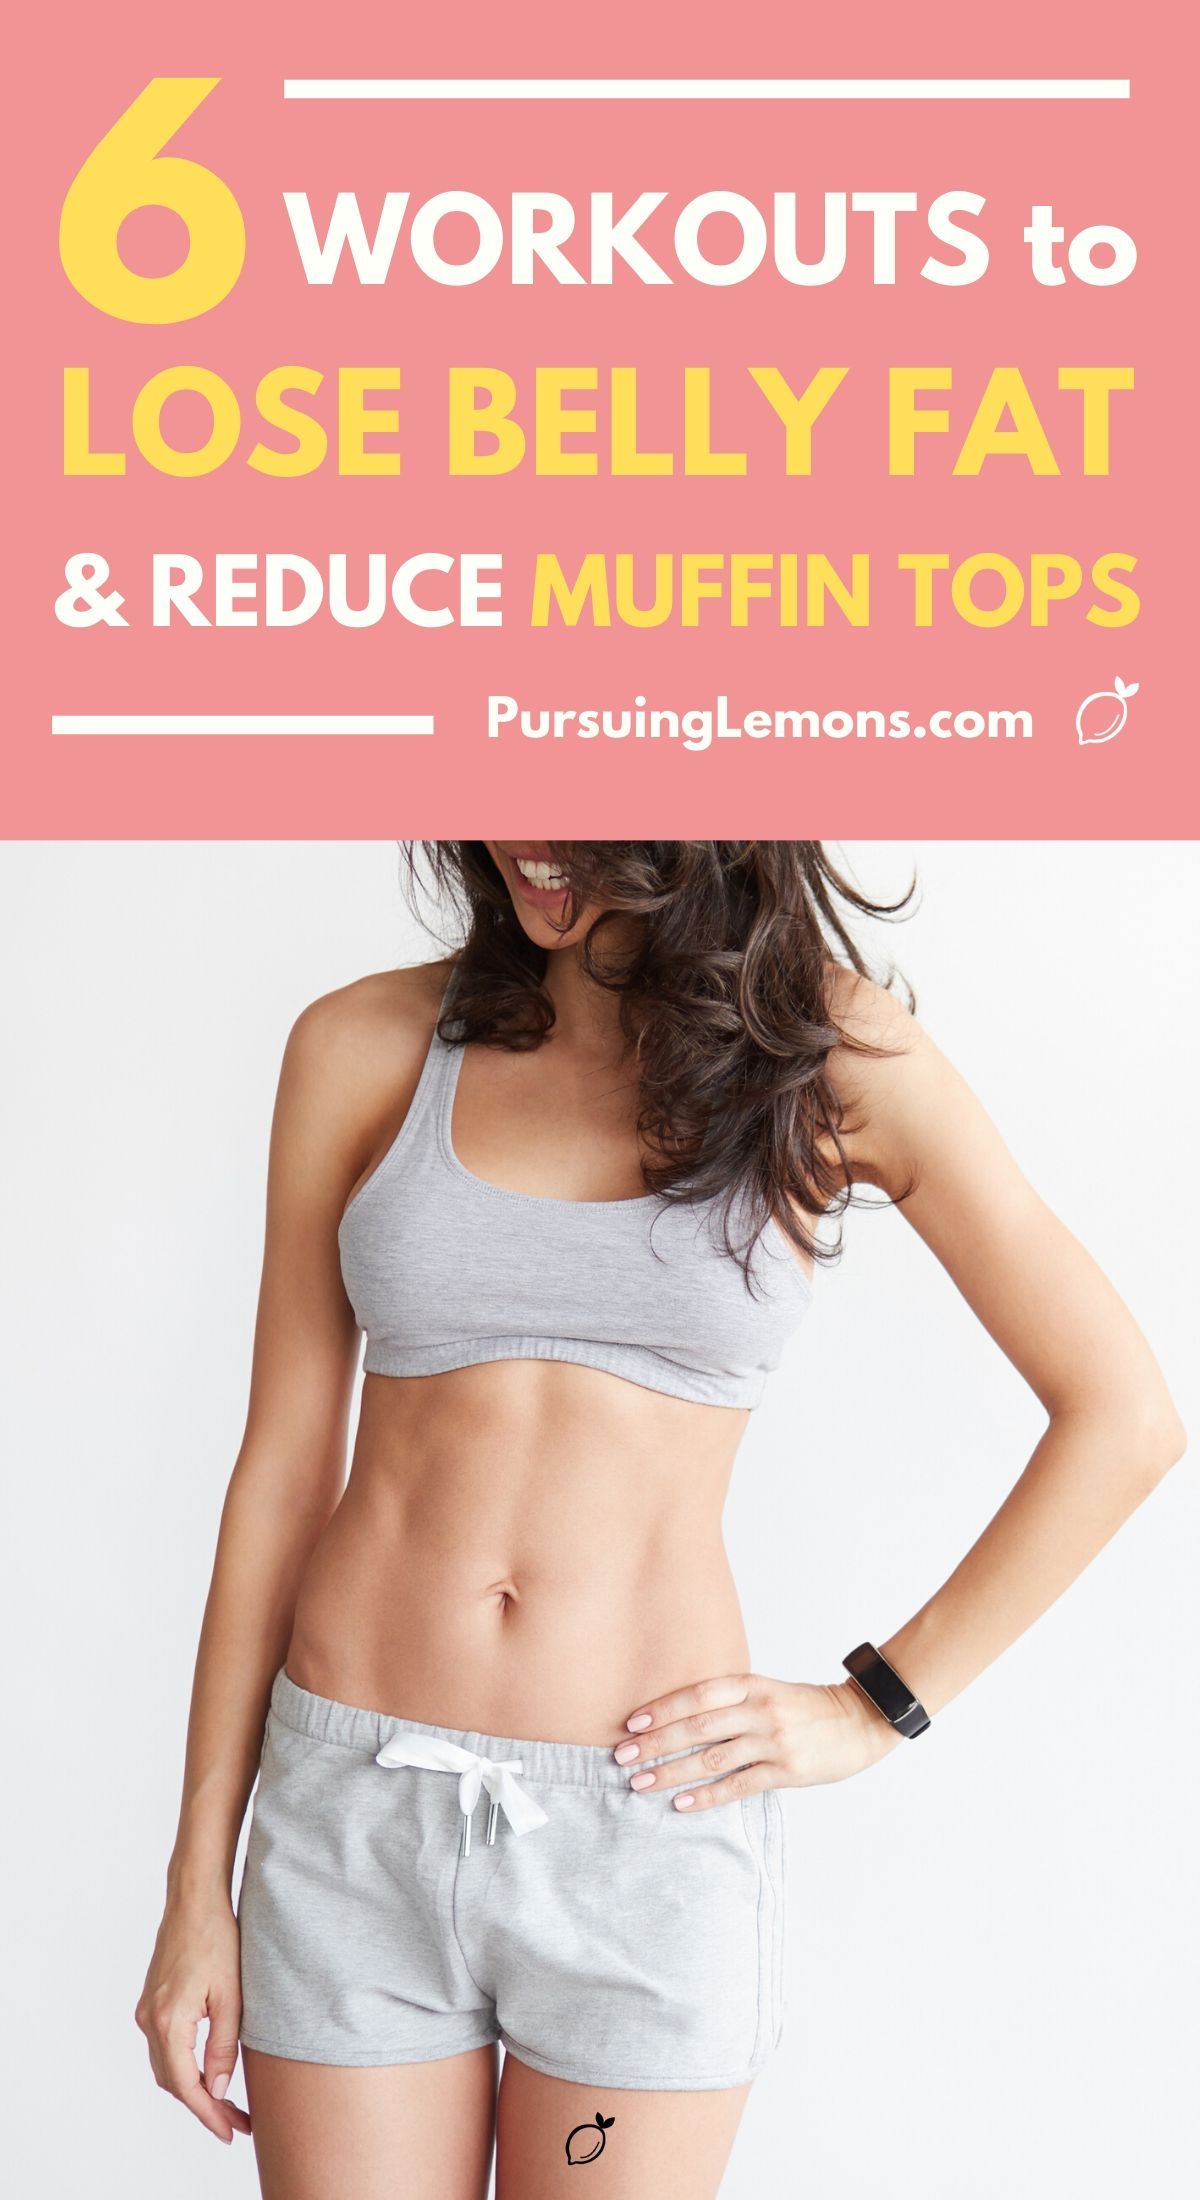 6 Workouts To Lose Belly Fats and Reduce Muffin Tops | Lose that stubborn body fat with these workout routines today! Here are some core strengthening exercises you can do at home and start losing weight! #workout #workoutathome #fitness